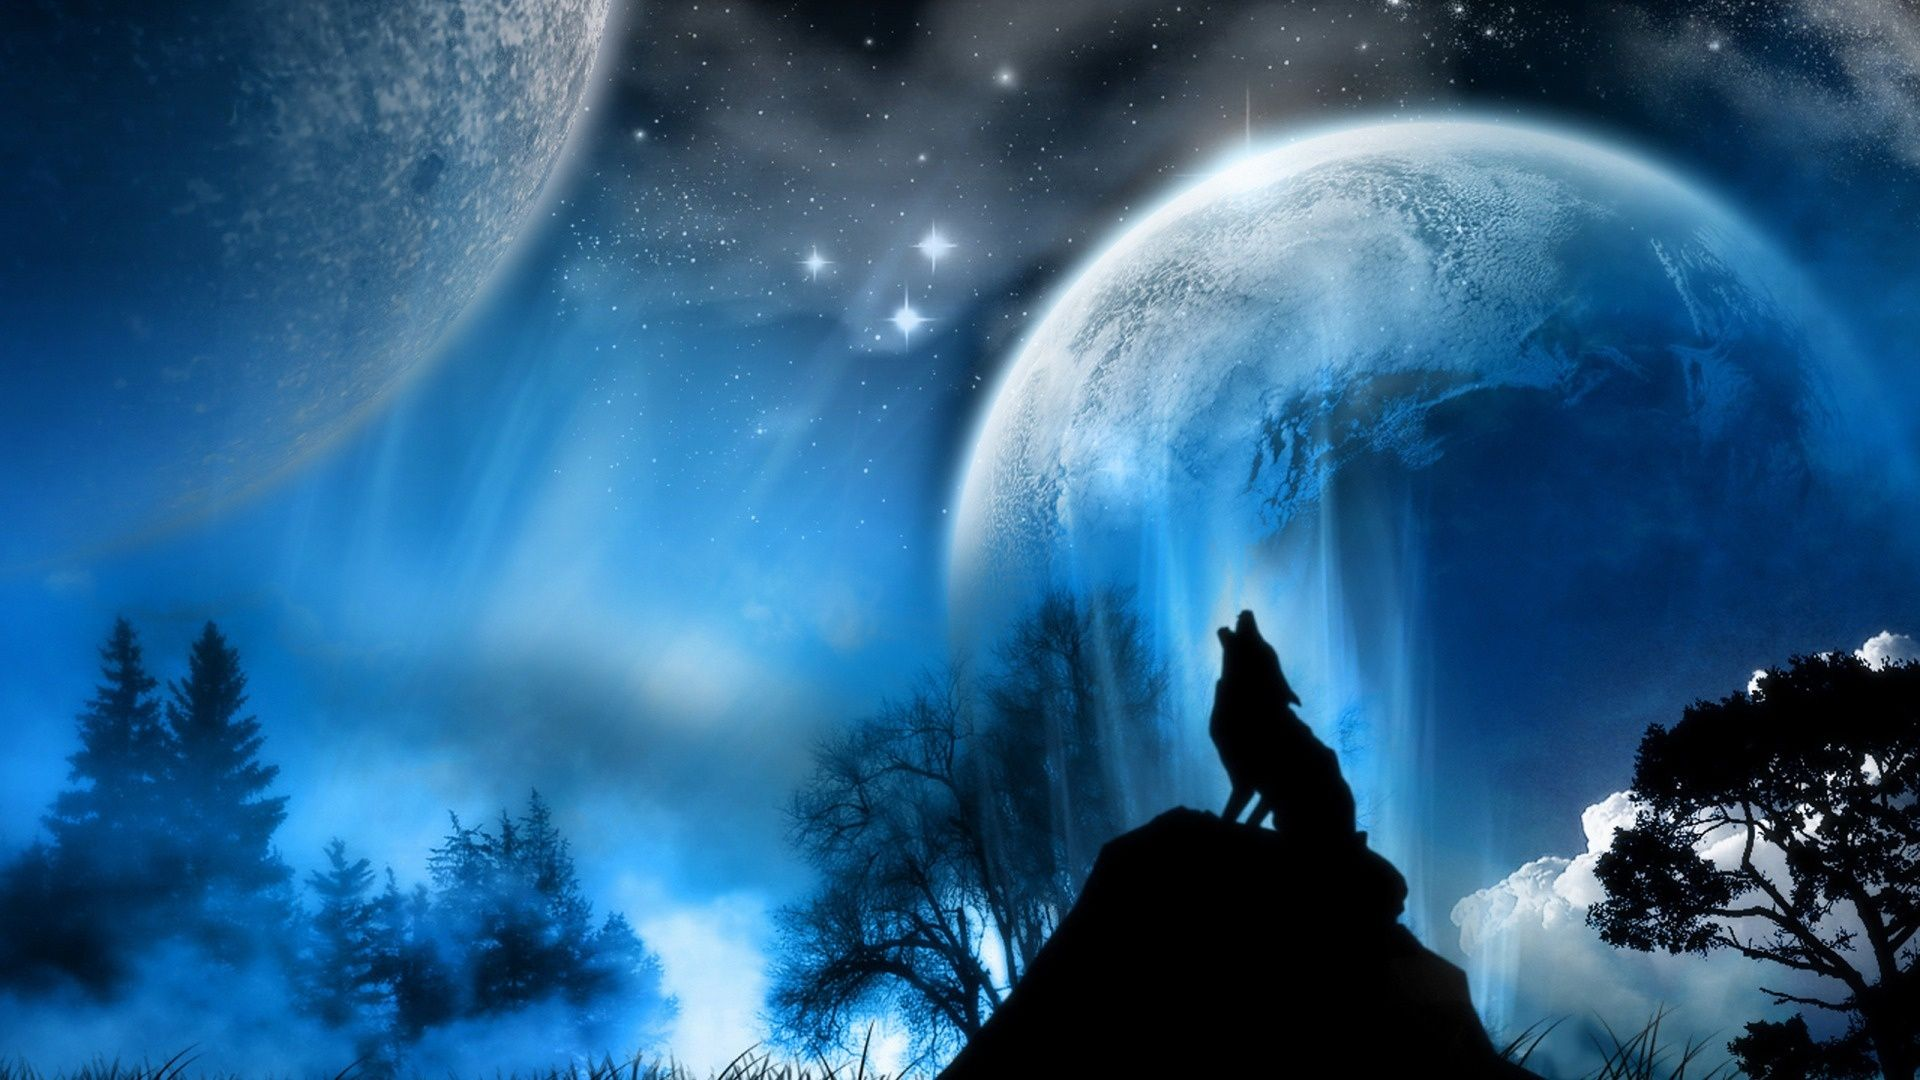 Desktop Best Wolf Wallpapers Hd Wallpaper For Home